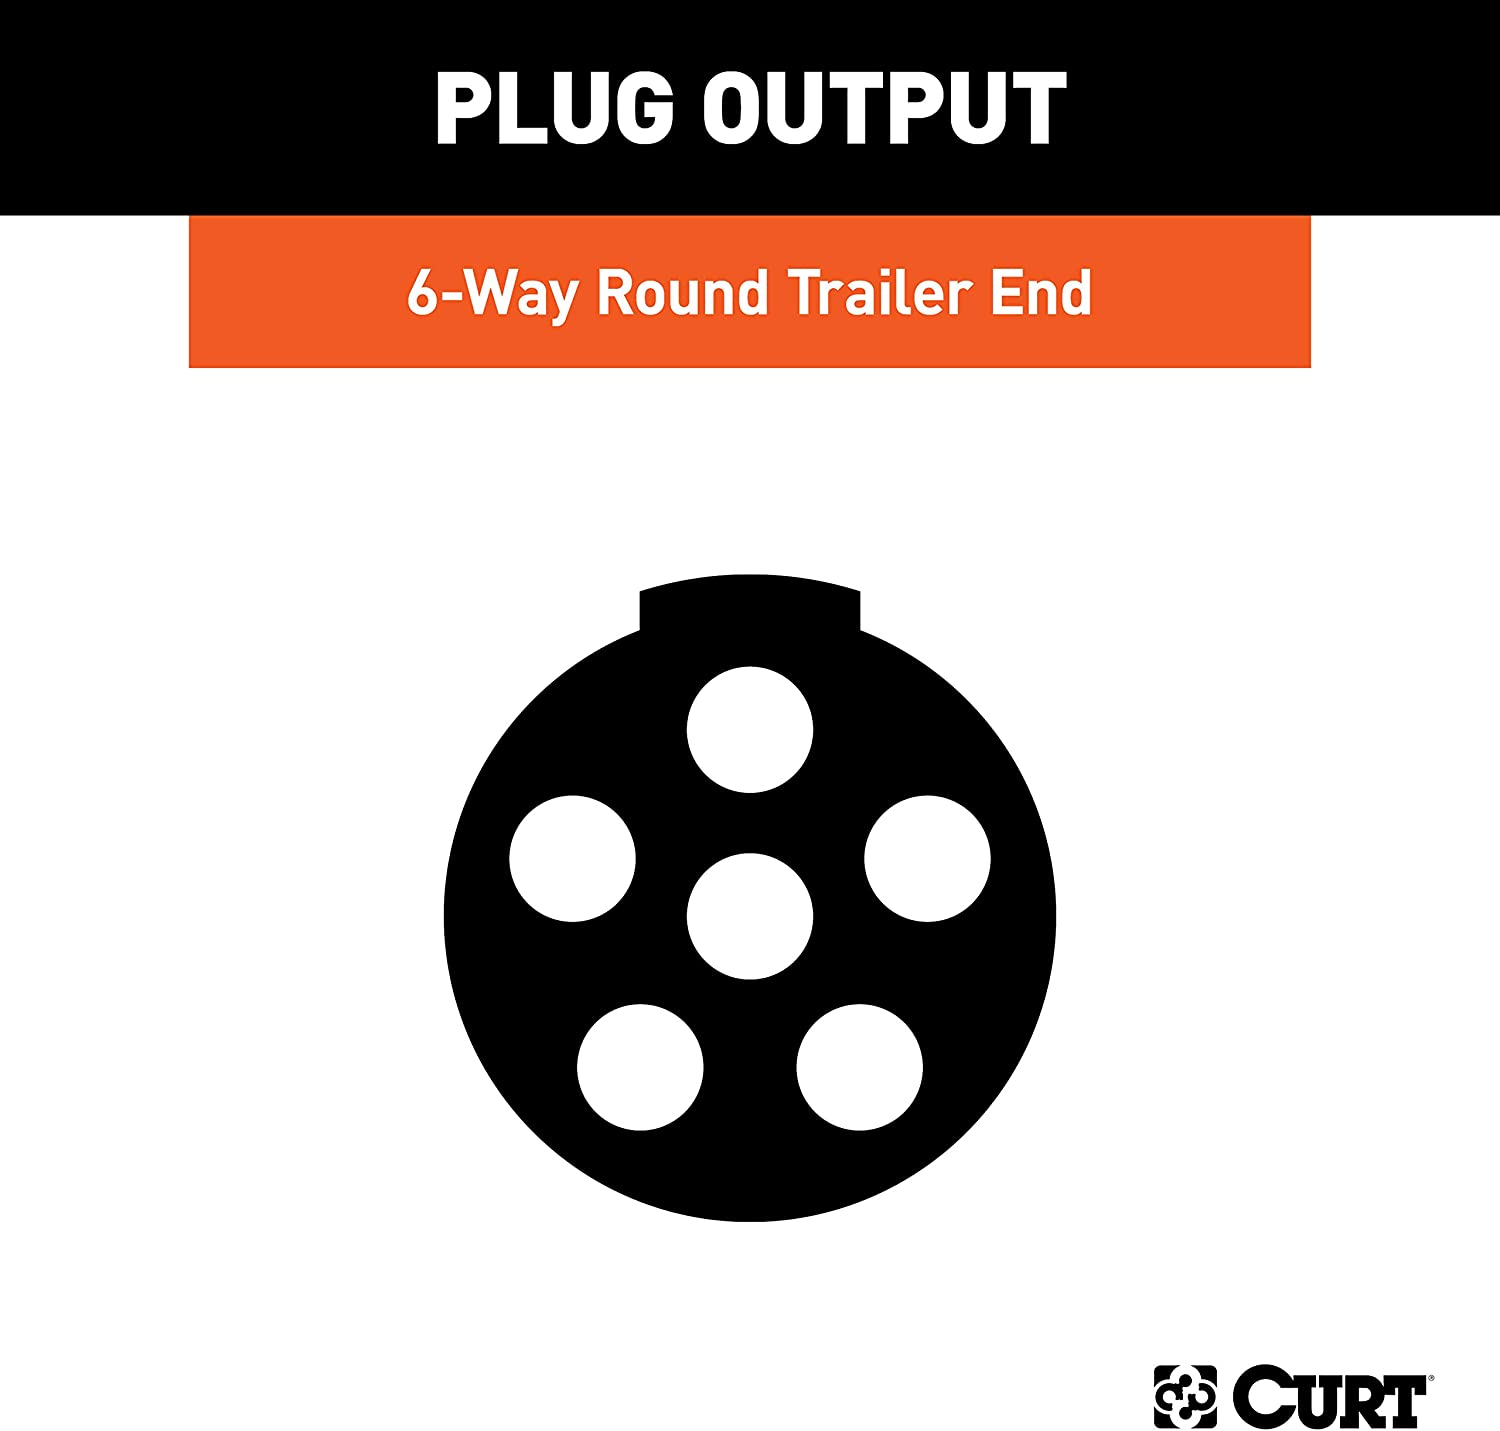 Trailer Plug Wiring Diagram 6 Way from images-na.ssl-images-amazon.com